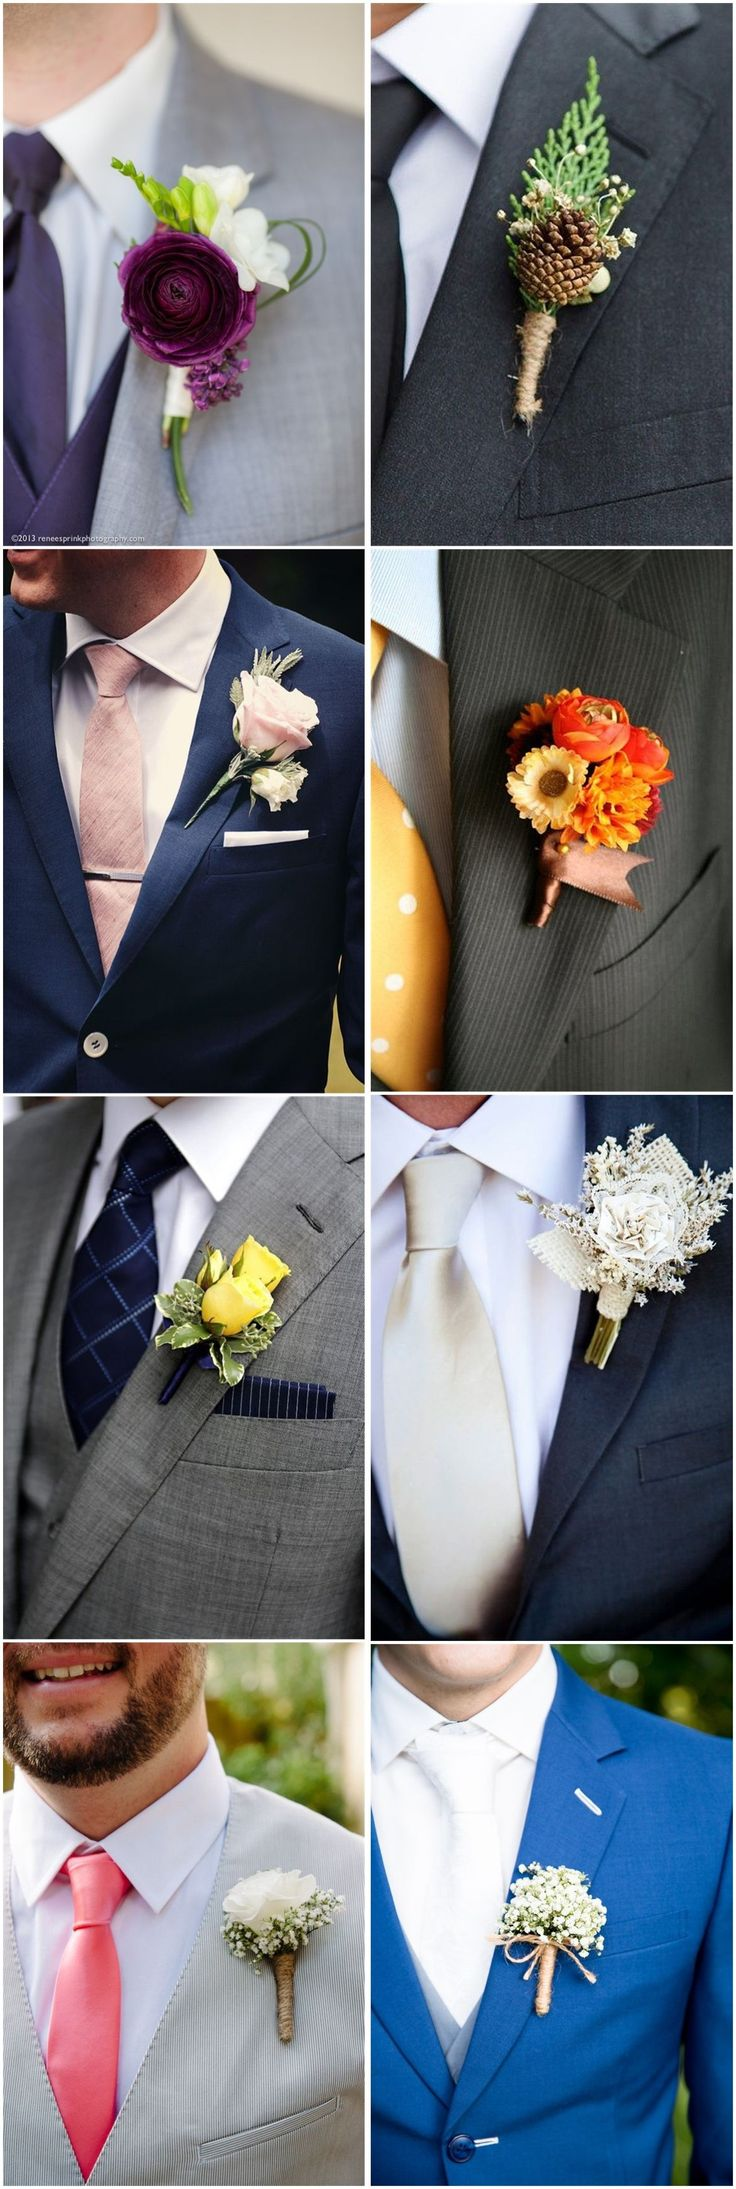 71 best wedding boutonniere images on pinterest groom attire 23 wedding boutonniere ideas you cannot resist lgbt weddingdiy solutioingenieria Image collections